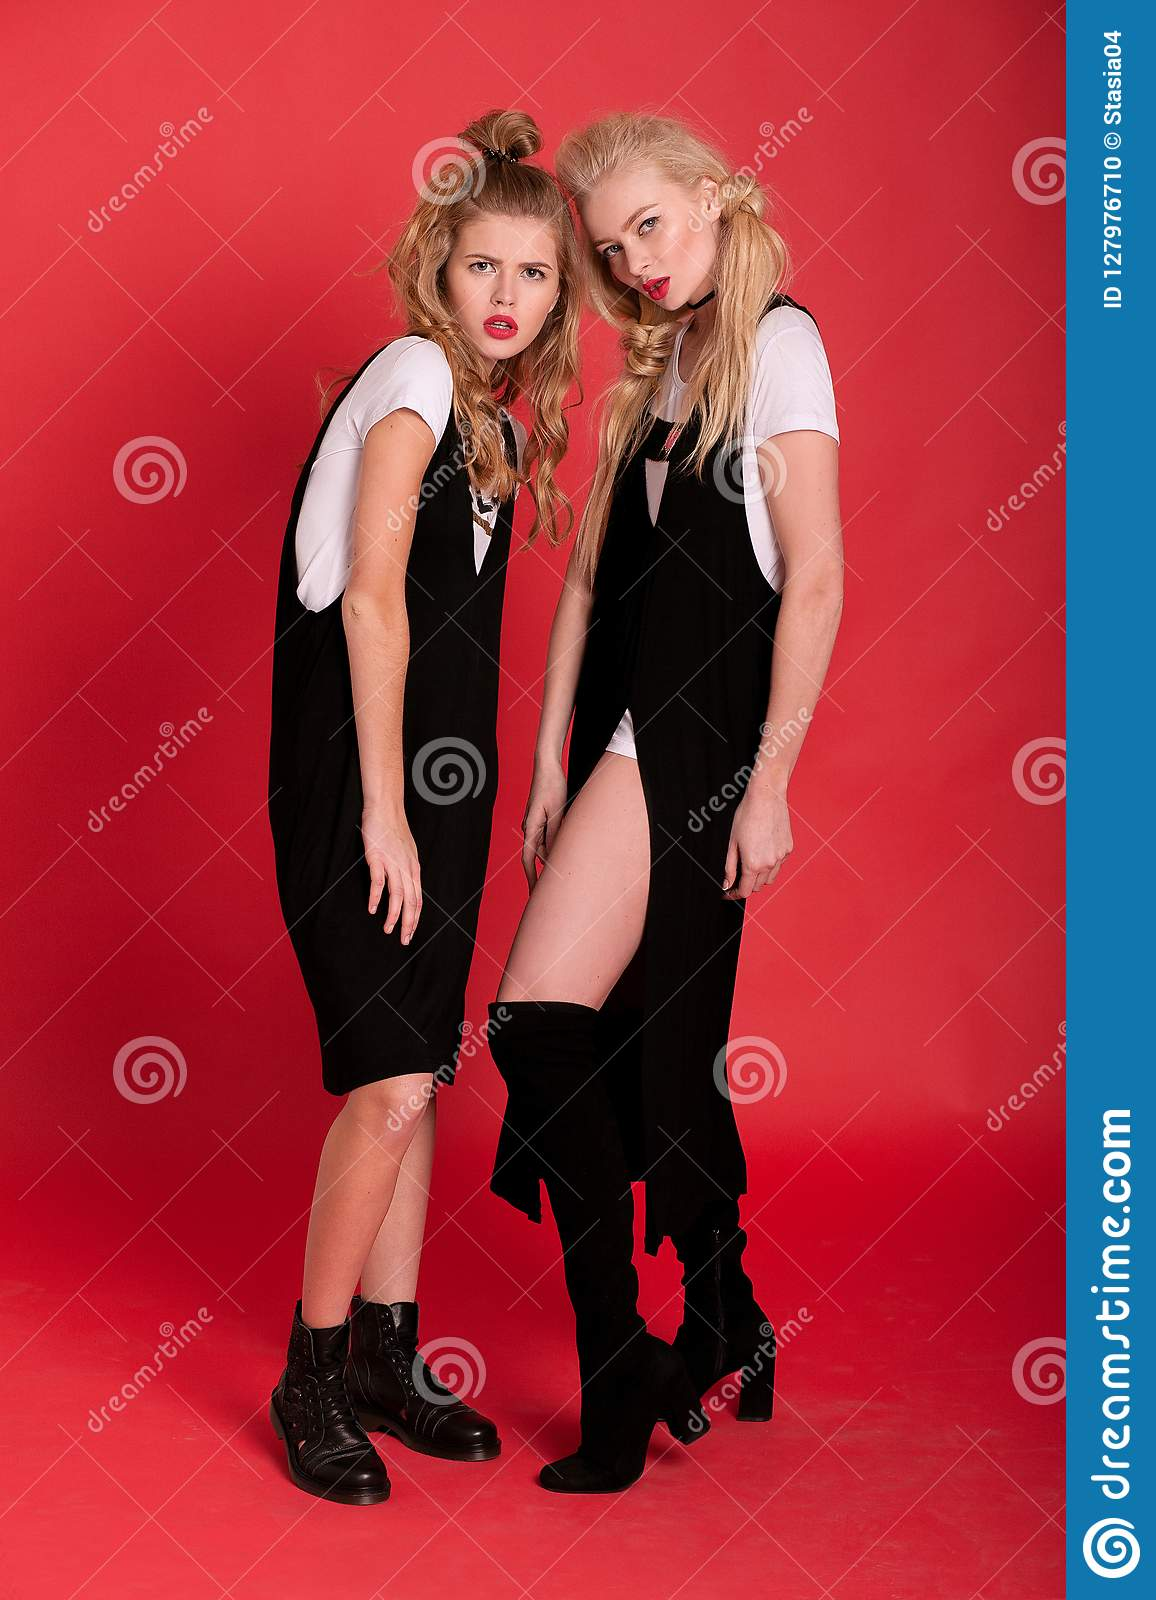 Two models in black dress and jackboots posing on red background